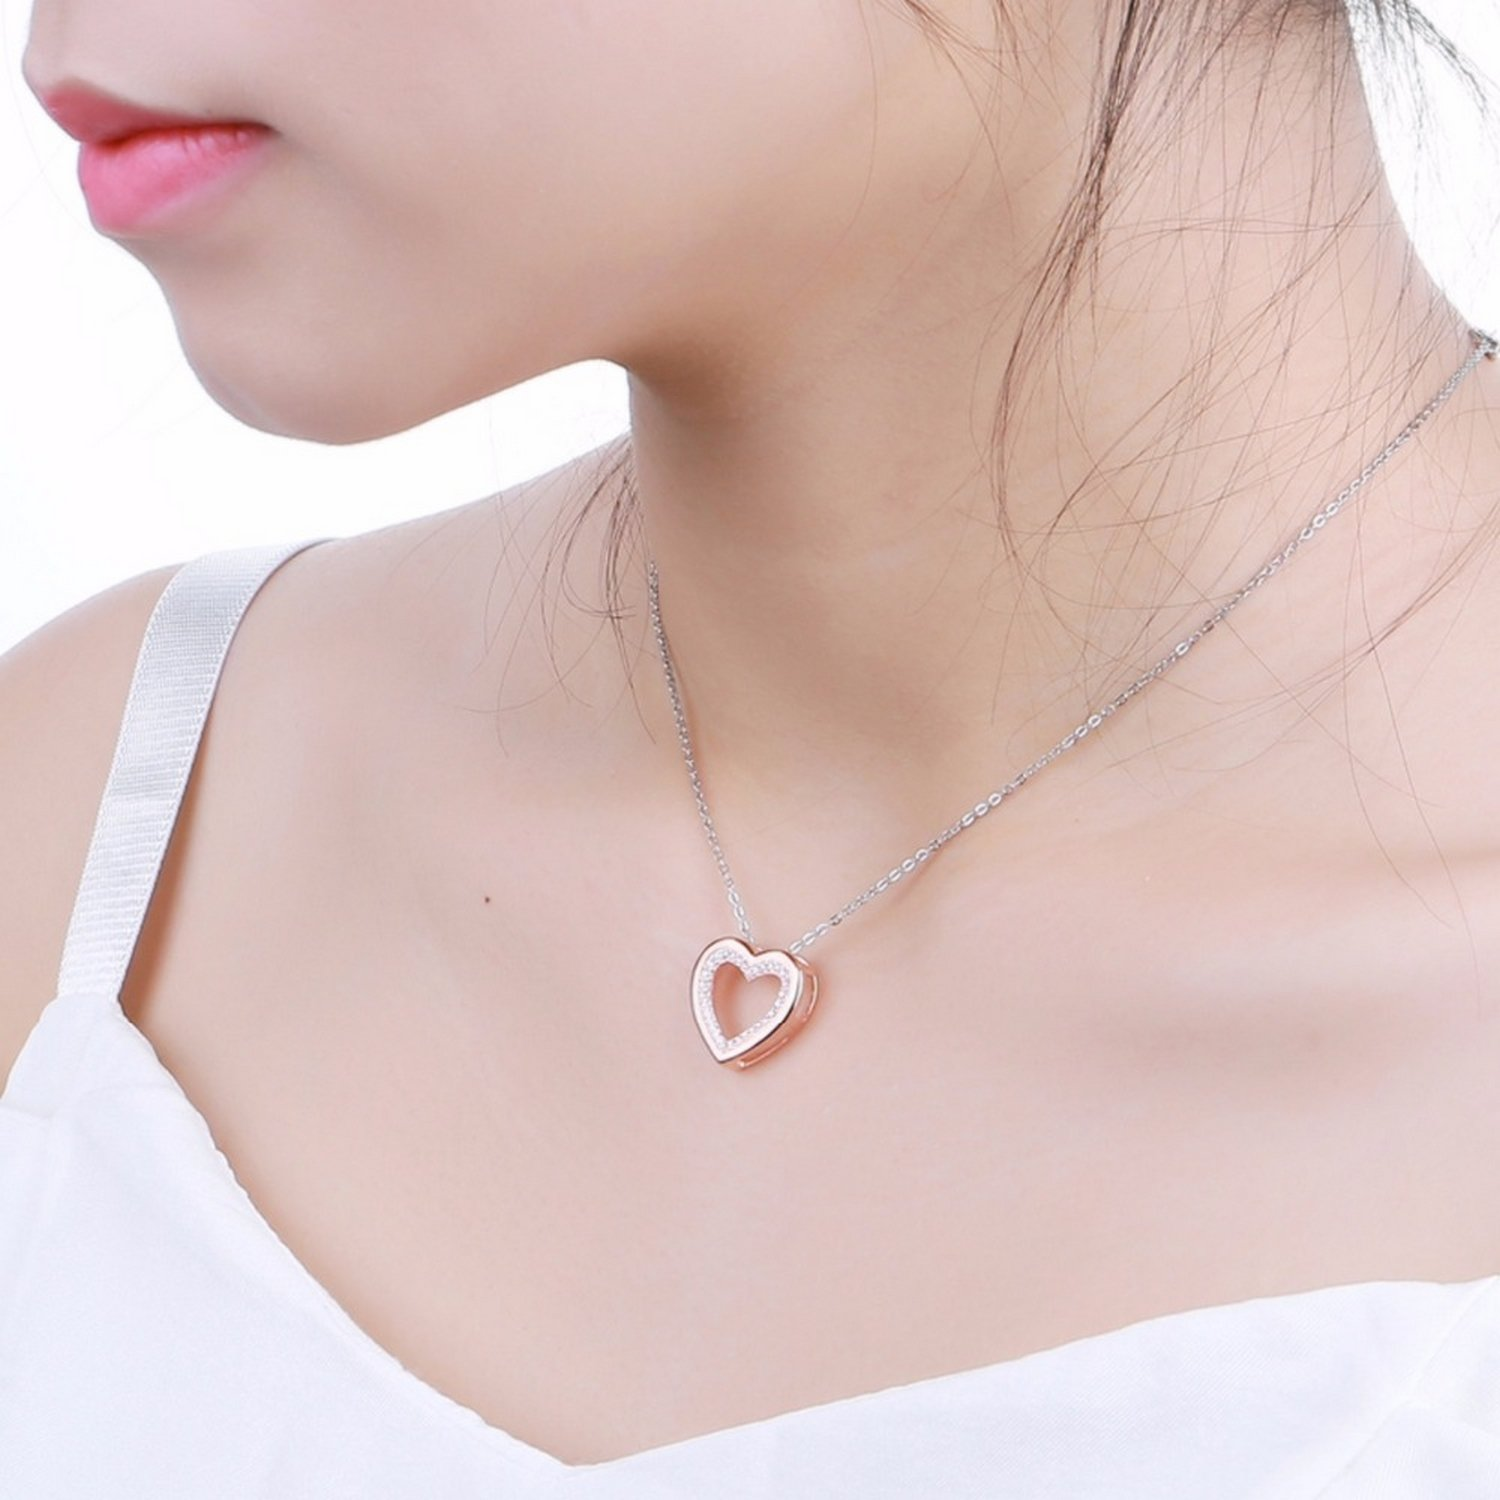 MMC Heart Valentines-Shaped Silver Pendants Necklaces